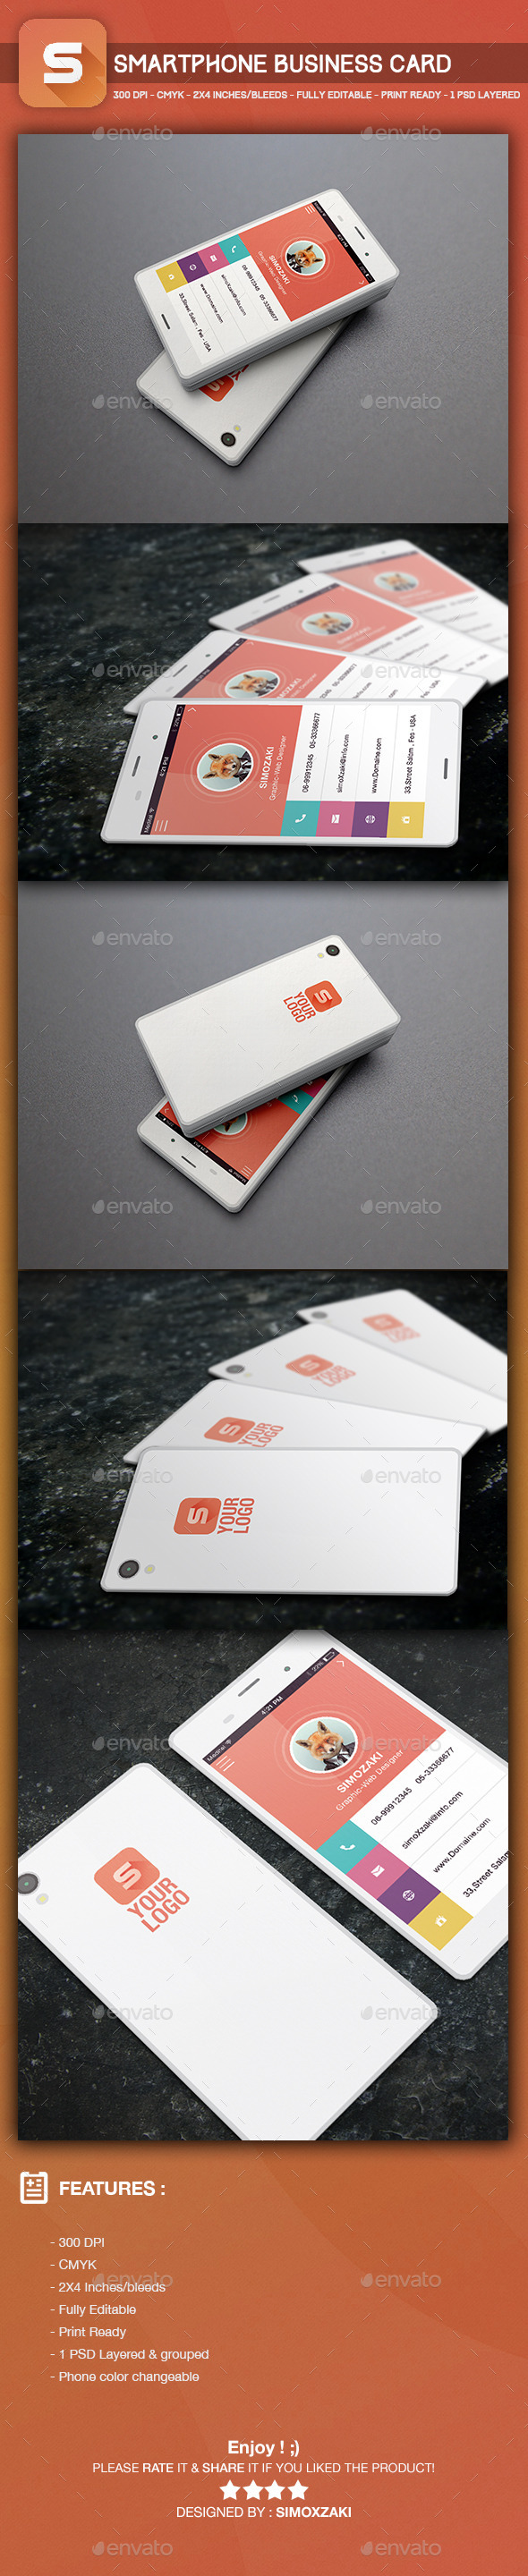 Smartphone Business Card template - Business Cards Print Templates